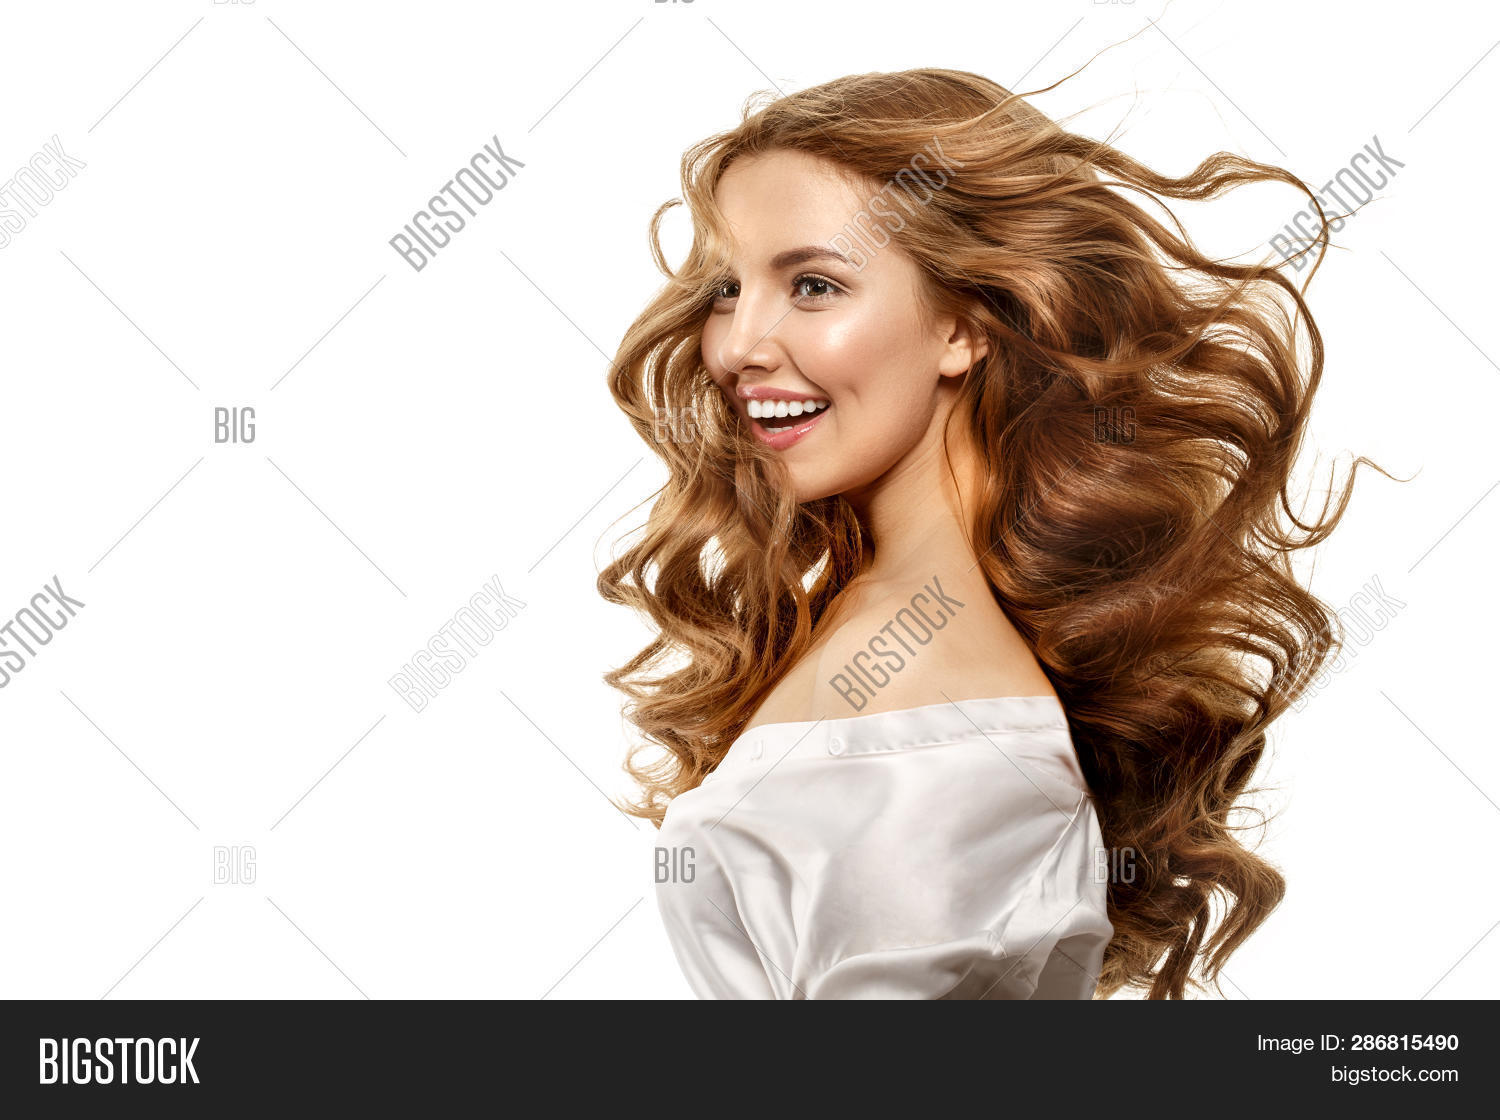 Portrait of beautiful girl with smiley face. Model laughing looking at camera. Flying curly hair. Ha